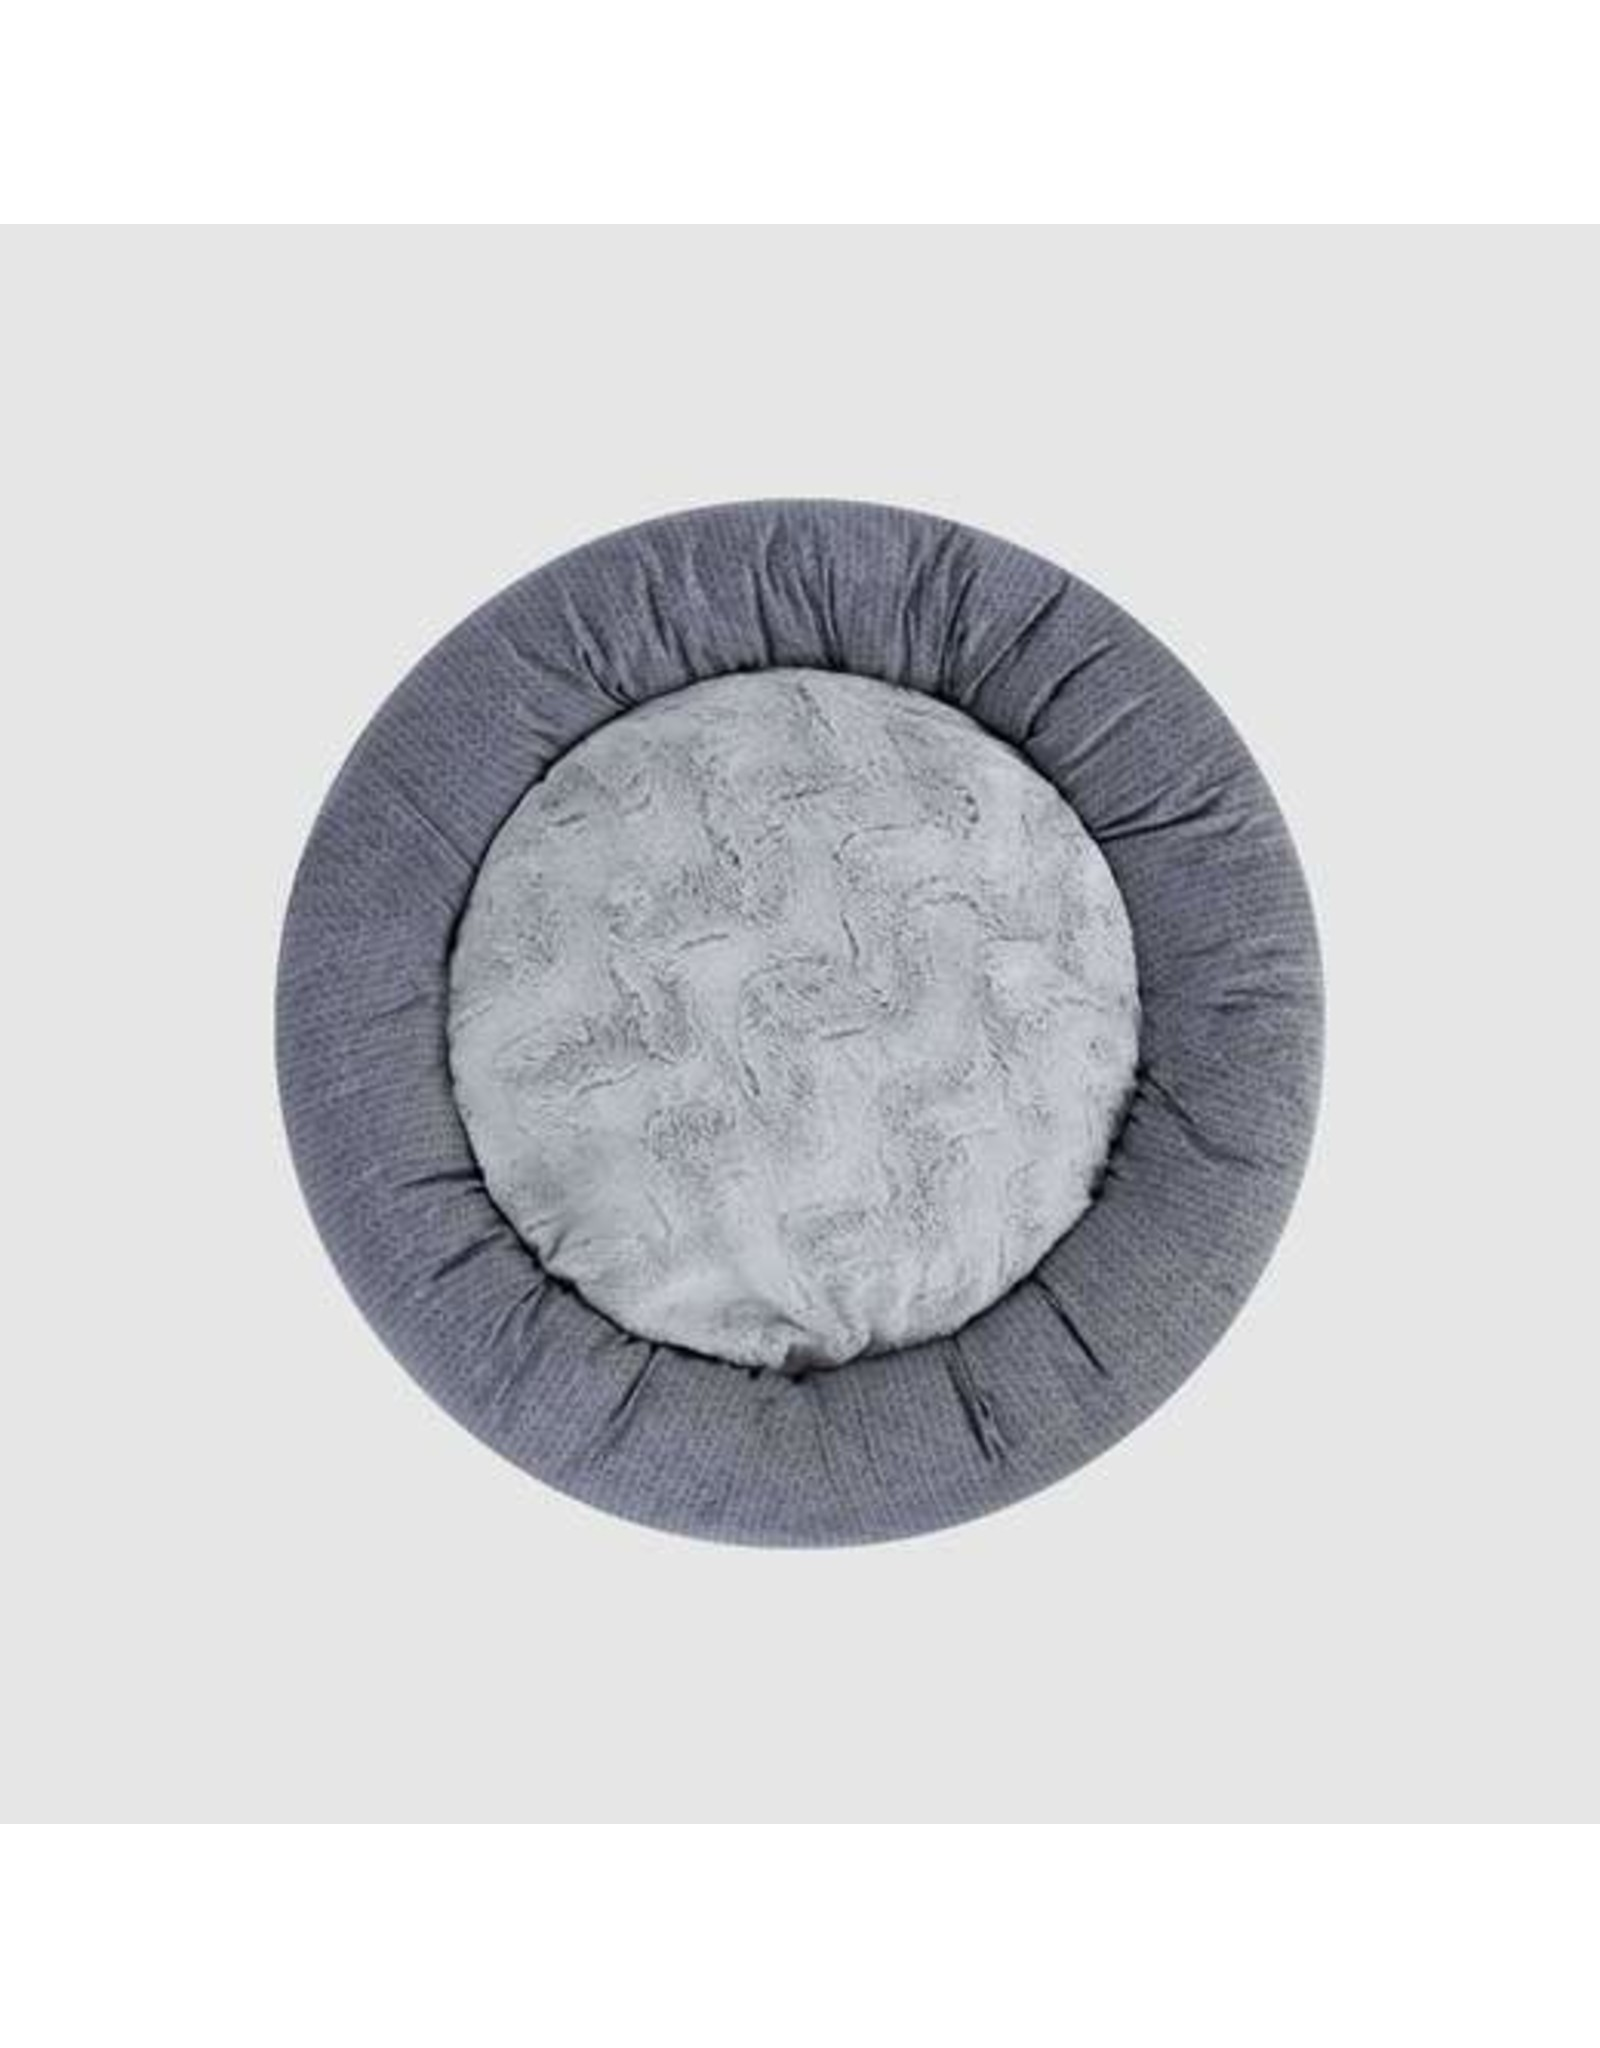 Canada Pooch Canada Pooch BIRCH Bed - Dove Grey SM